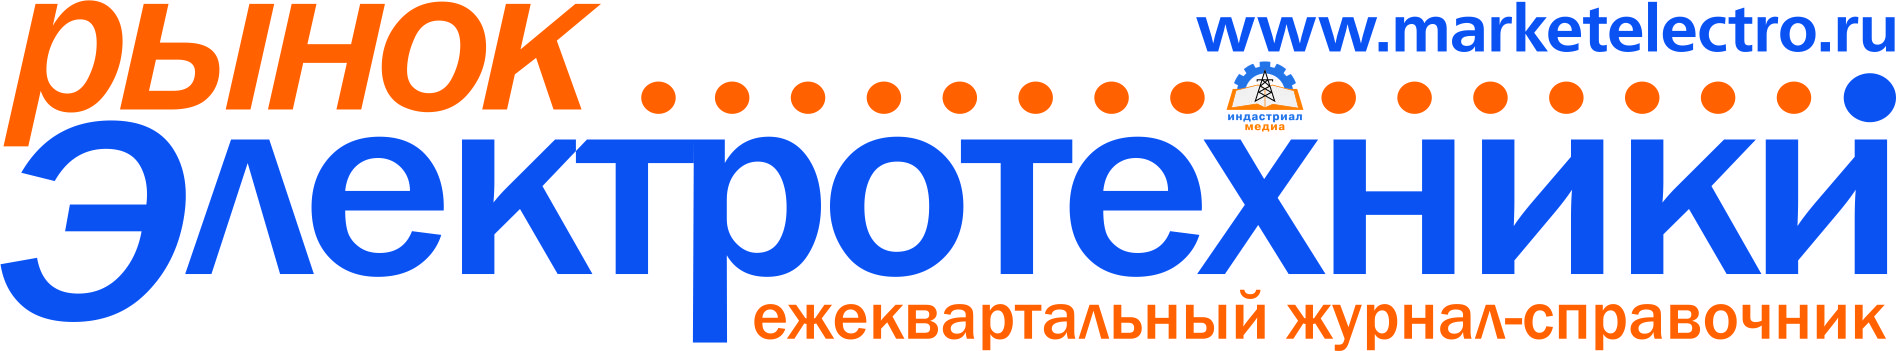 https://www.marketelectro.ru/